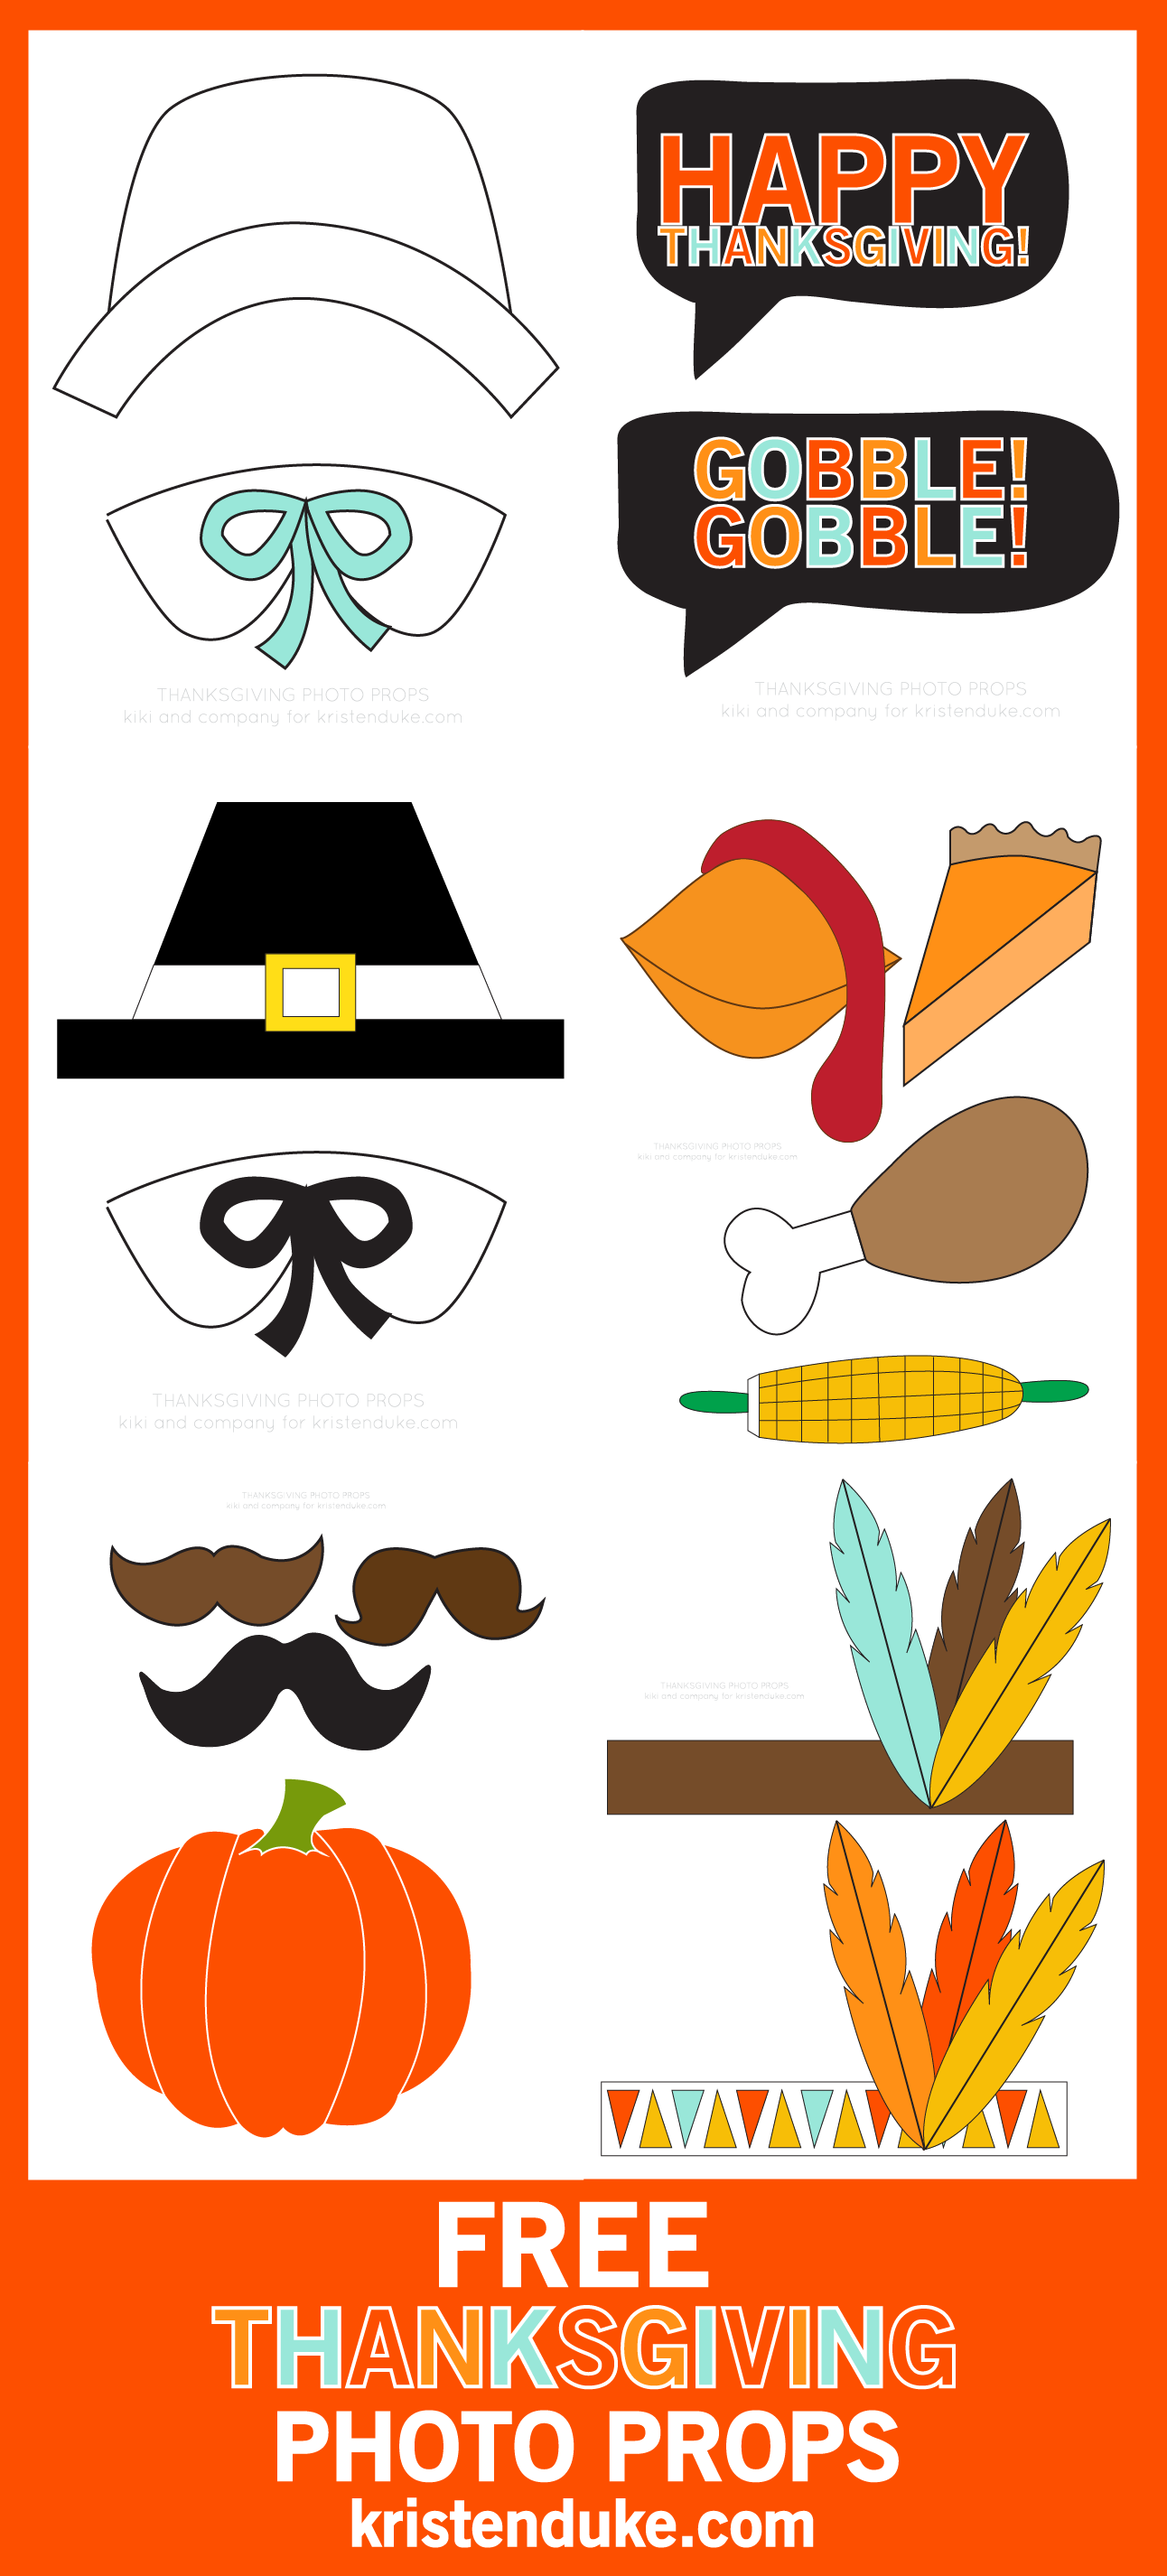 Thanksgiving Photo Booth Free Printables